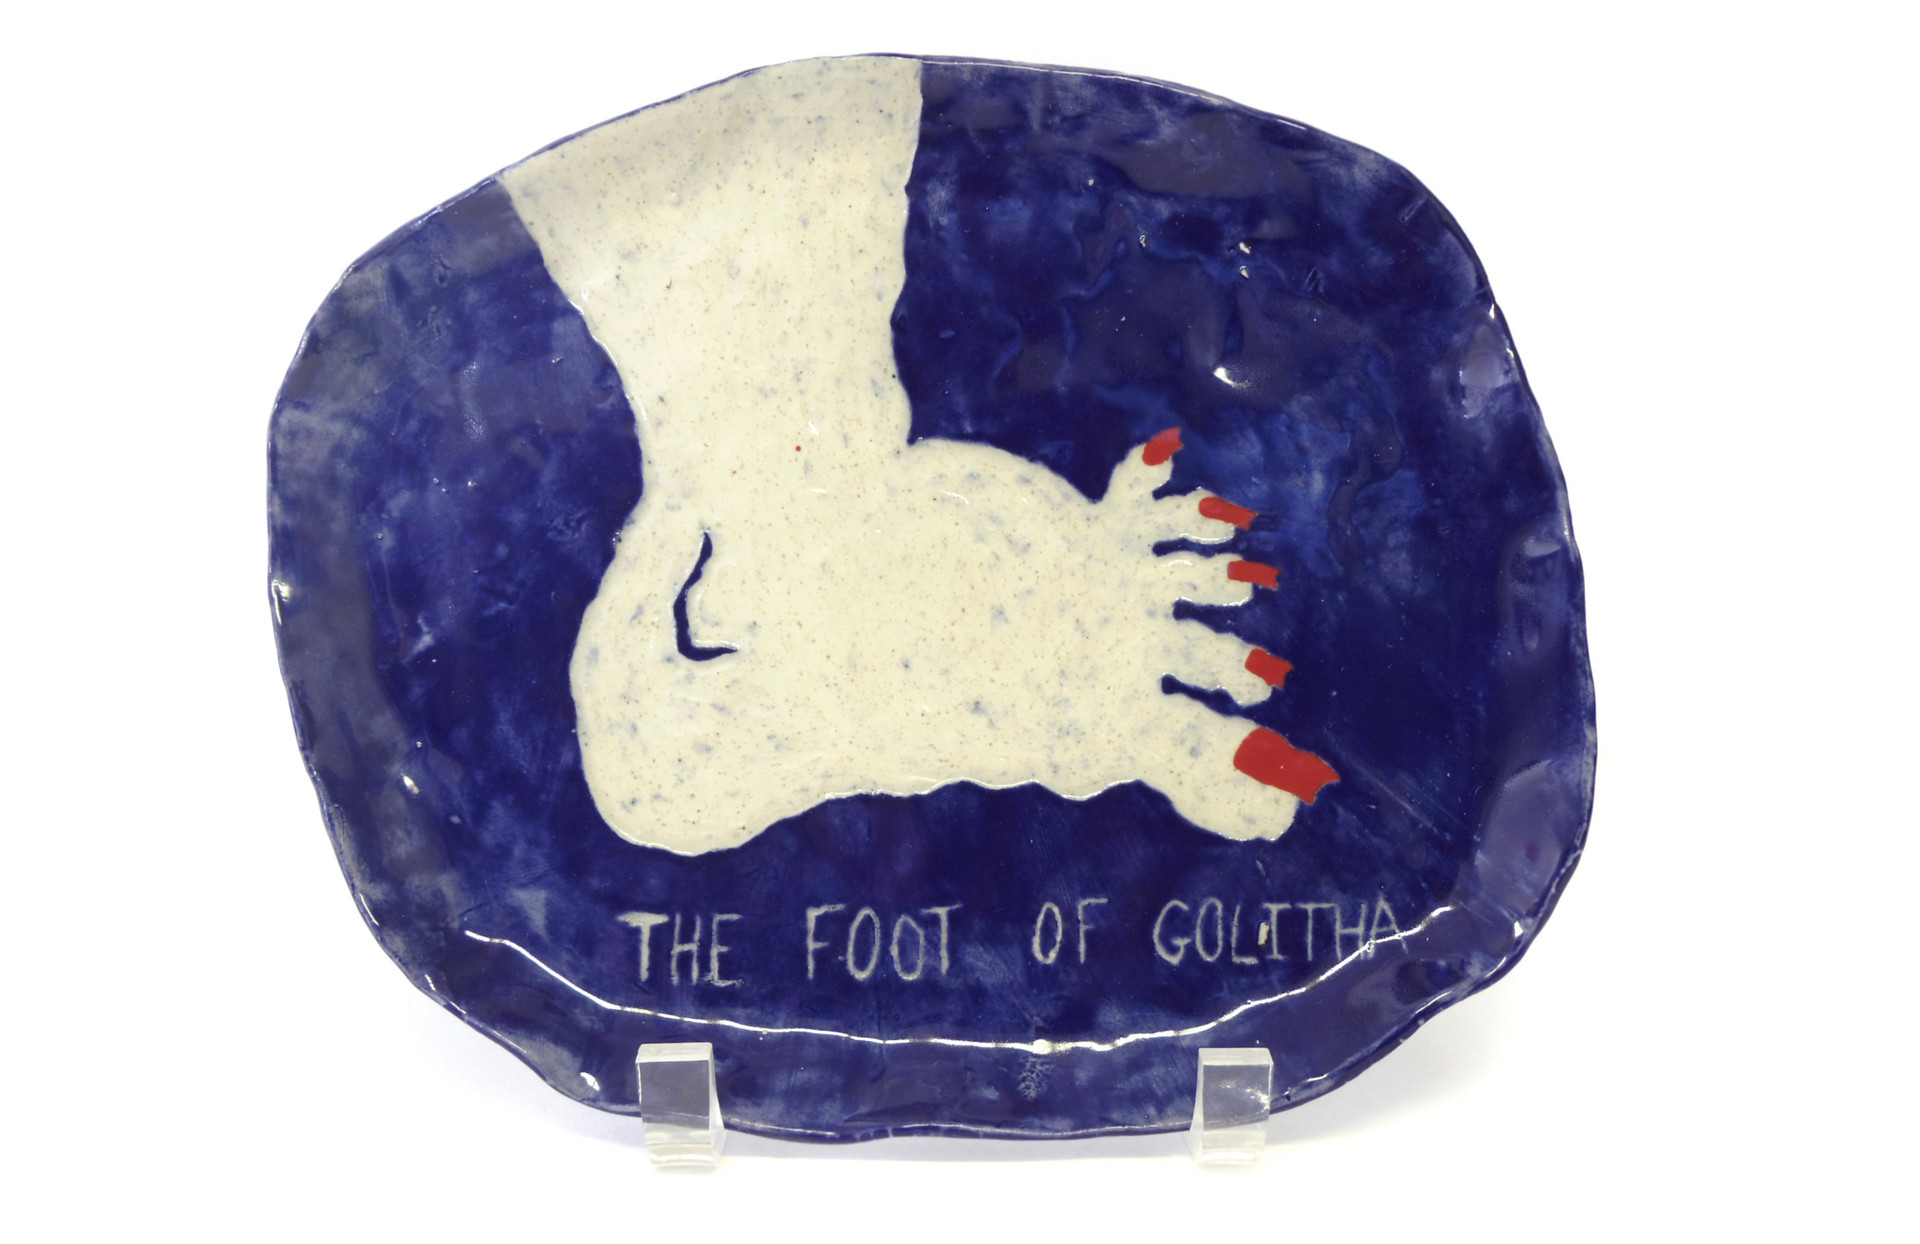 The Foot of Goliatha